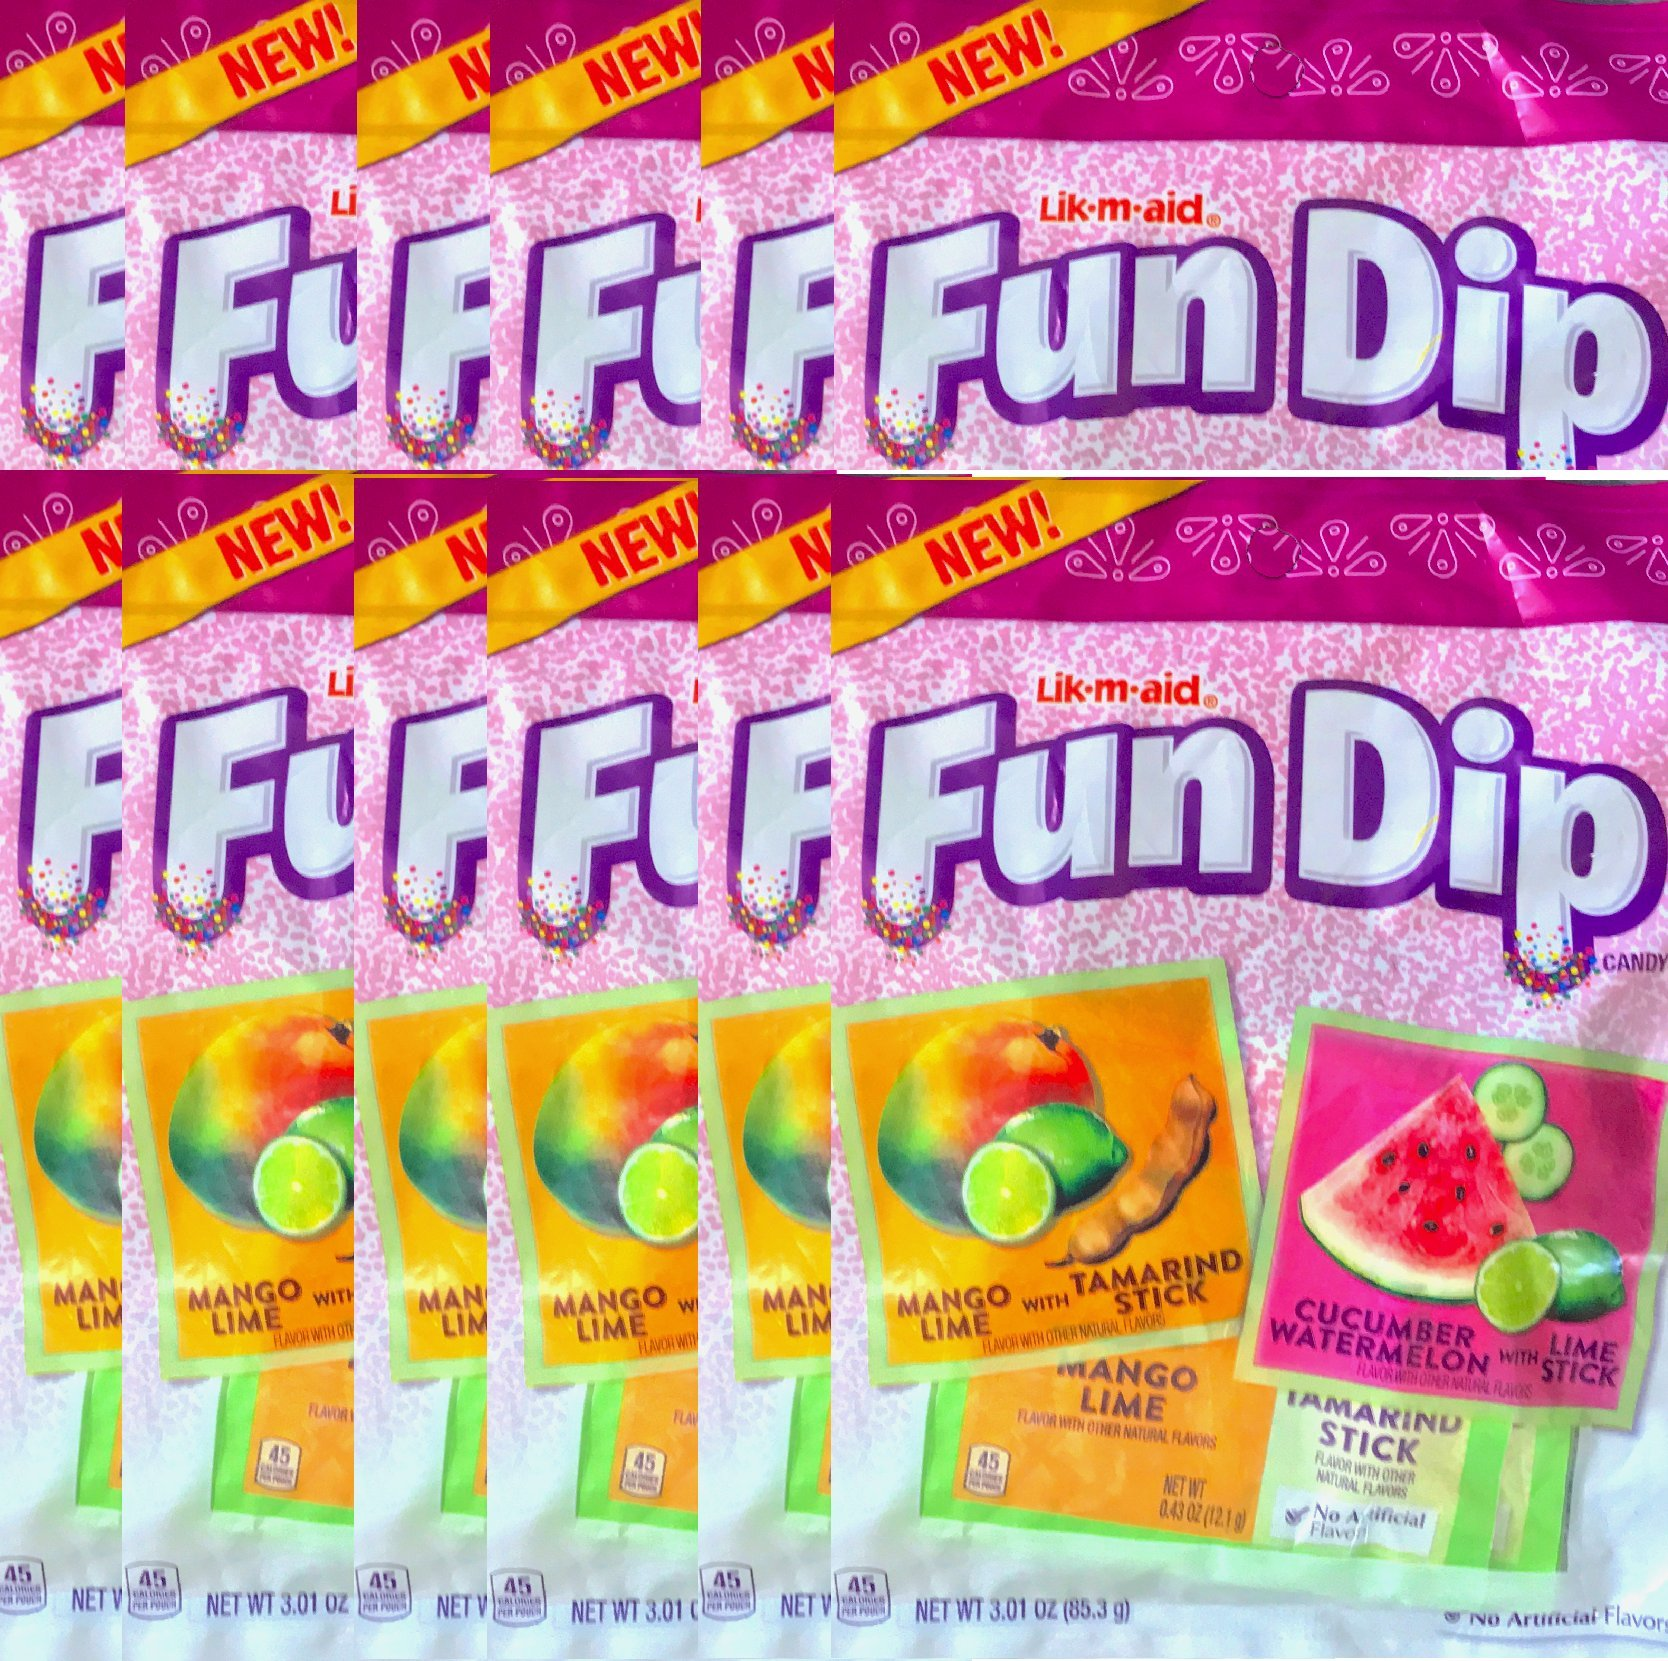 Fun Dip Candy Mango Lime With Tamarindo Stick/Cucumber watermelon With Lime Stick Net Wt 3.01 Oz (12)